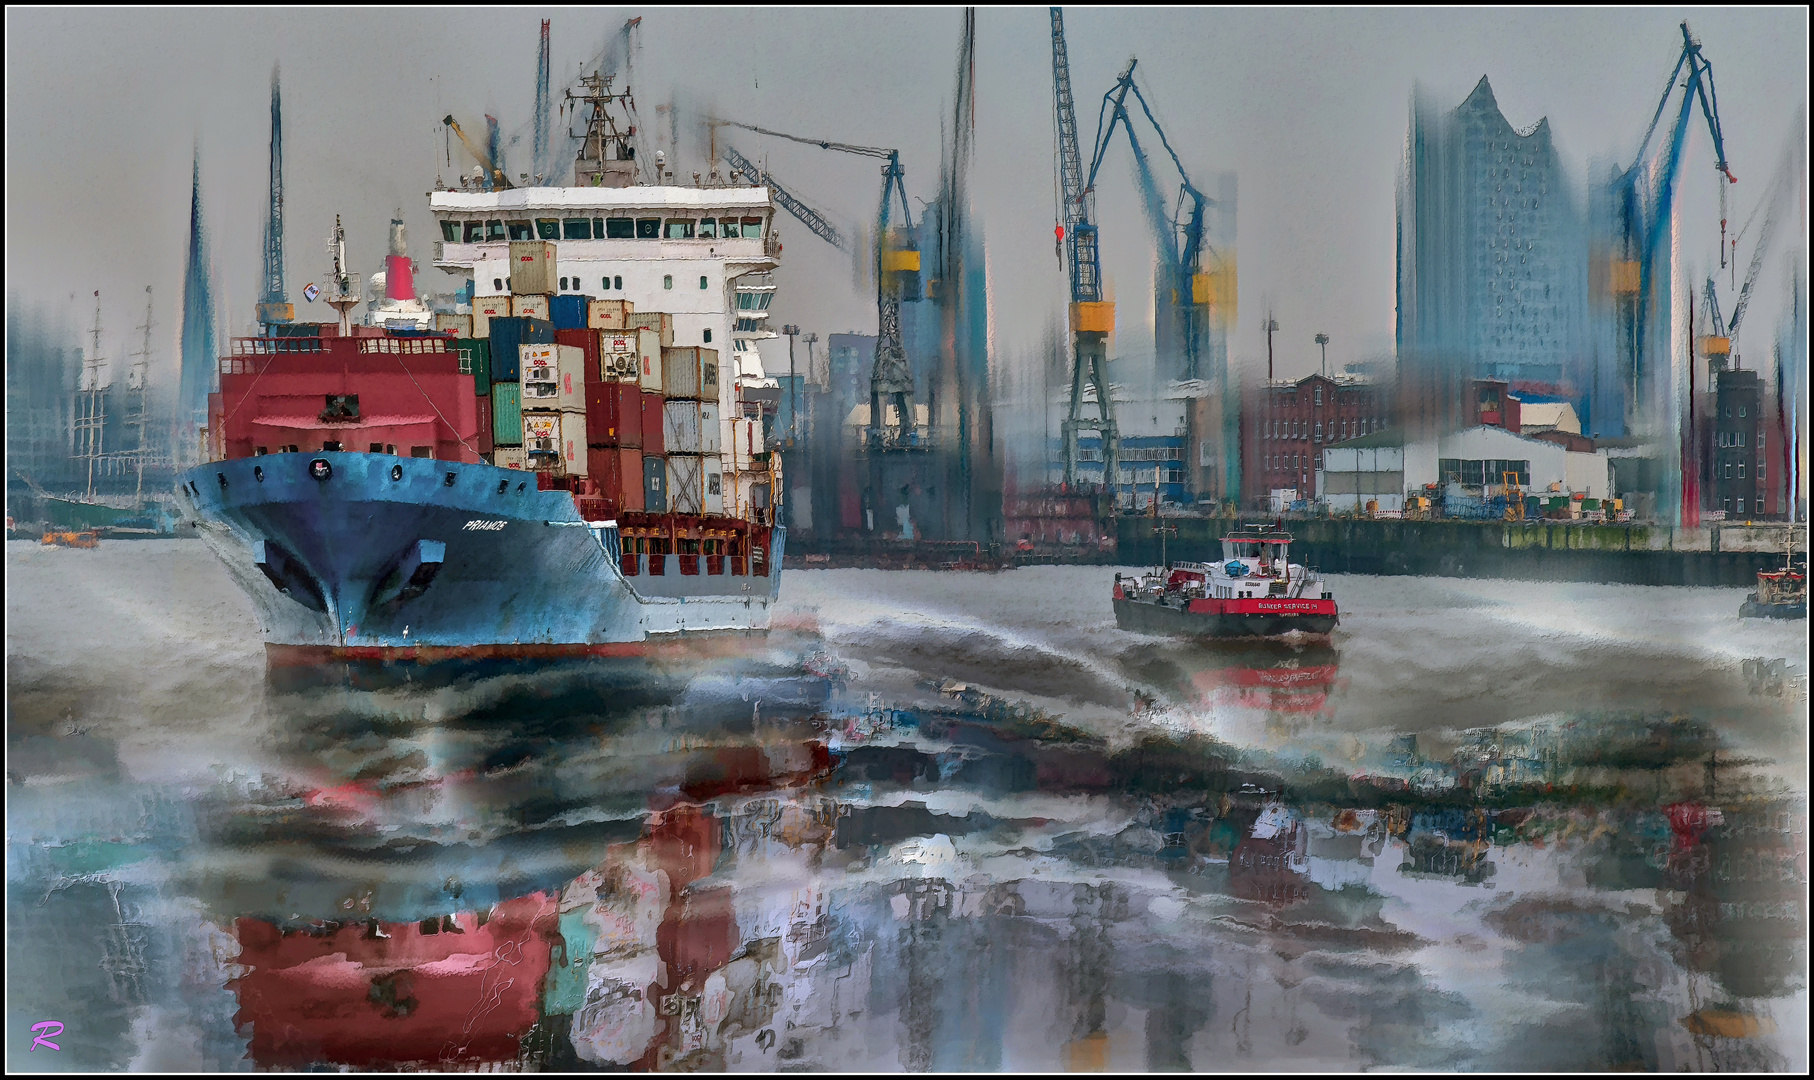 Container-Frachter PRIAMOS in Hamburg